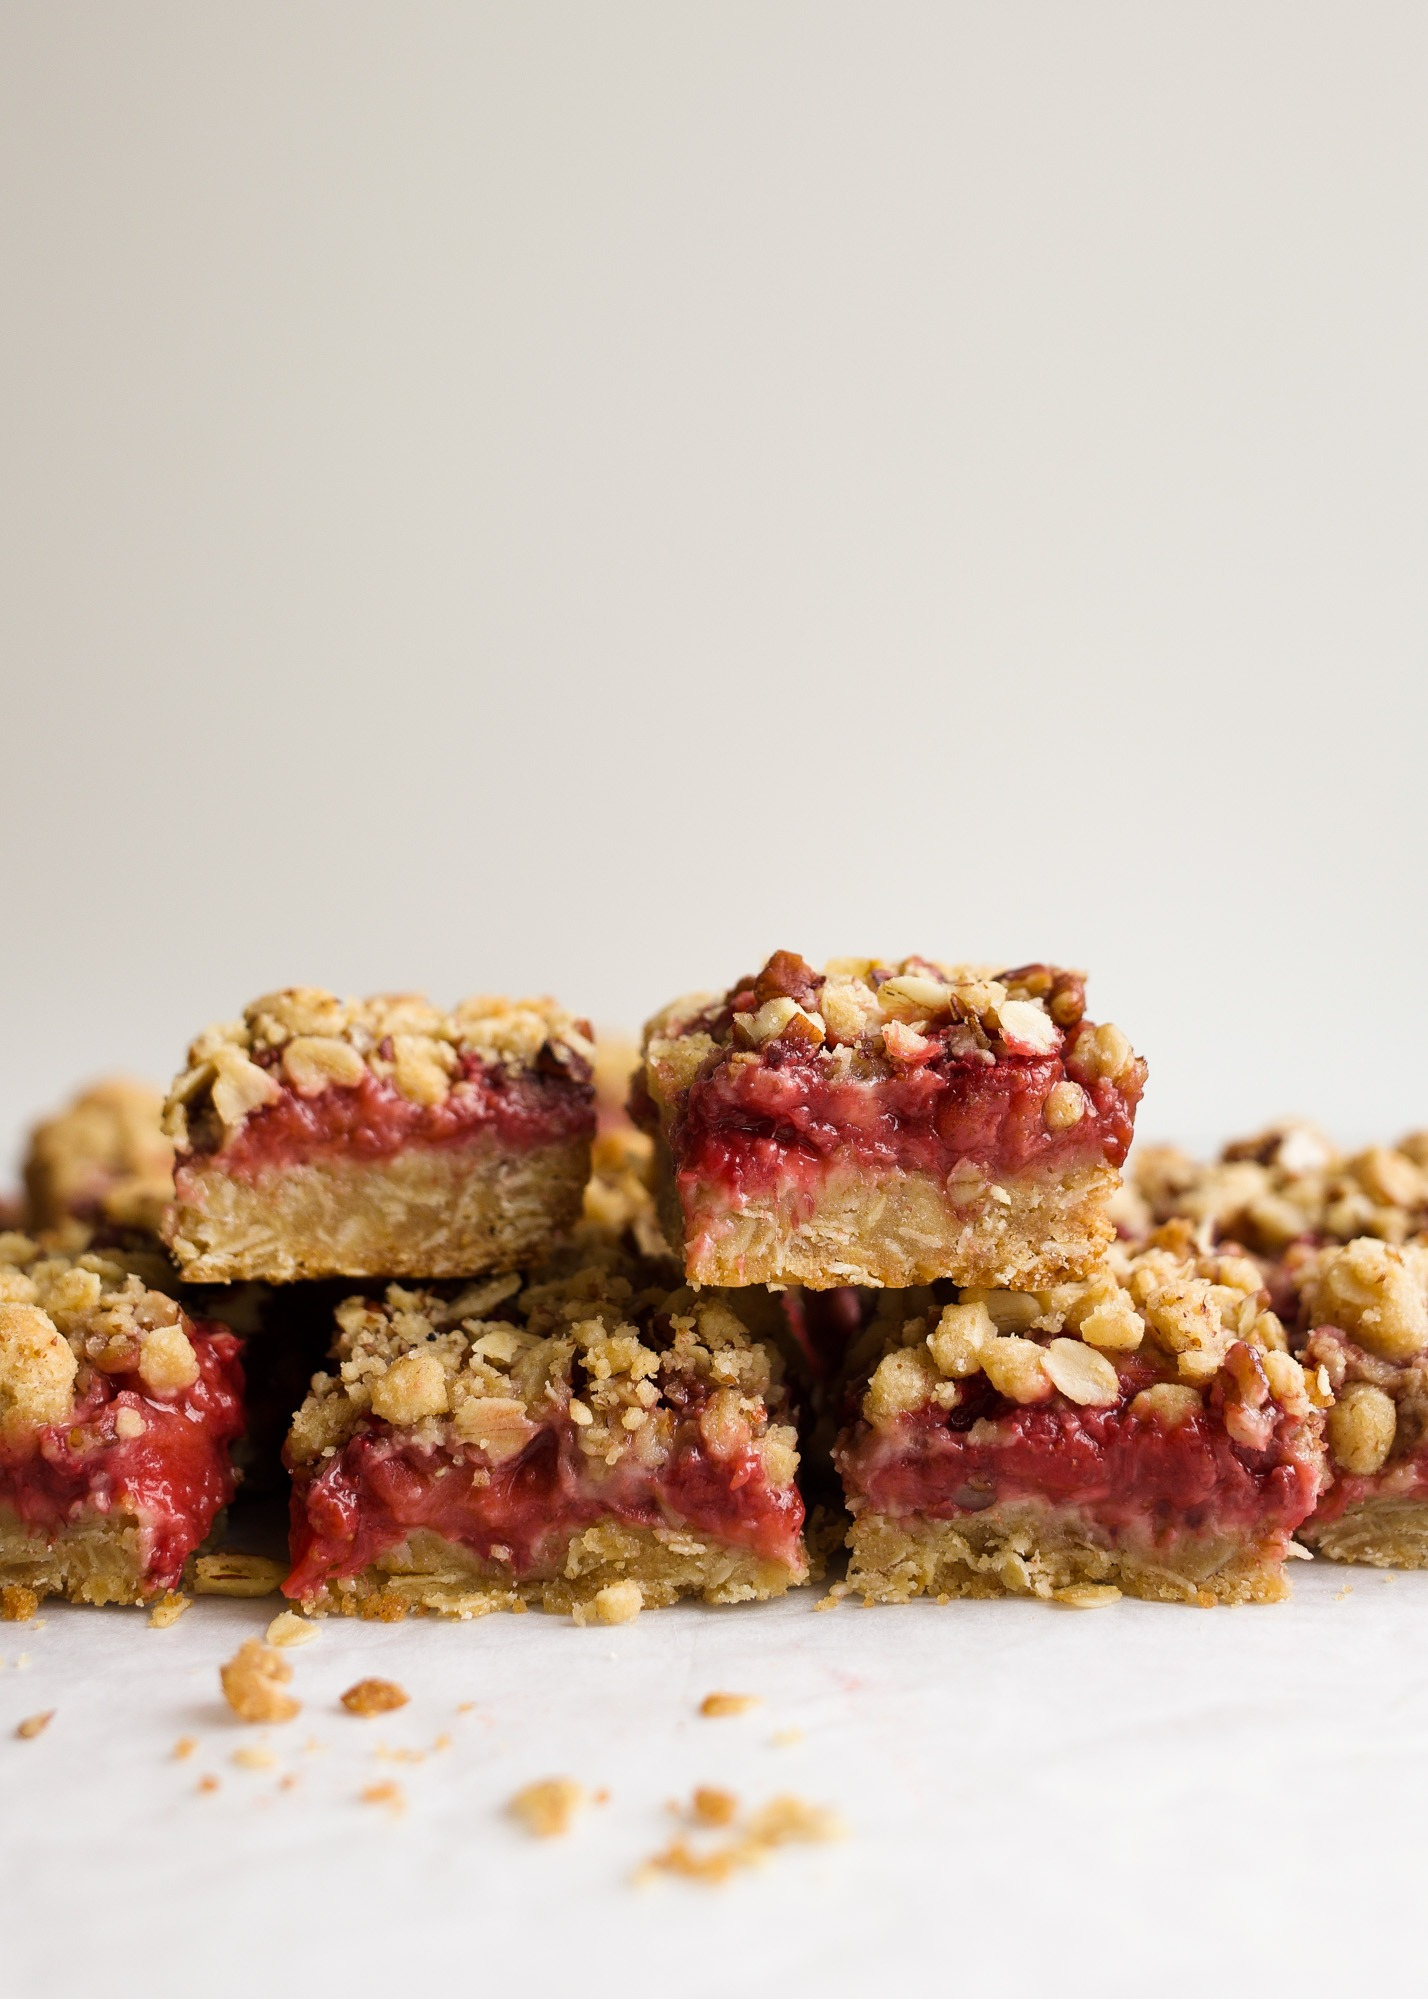 Strawberry Rhubarb Crumb Bars by Wood and Spoon blog are simple, make ahead jam filled bars made from spring fruit. The tart rhubarb makes a quick preserve with strawberries for a gooey centered oatmeal cookie bar. You can use fresh or frozen fruit for the jam and add additional fruit to make extra thick and fruity bars. Check out the recipe and how-to on thewoodandspoon.com